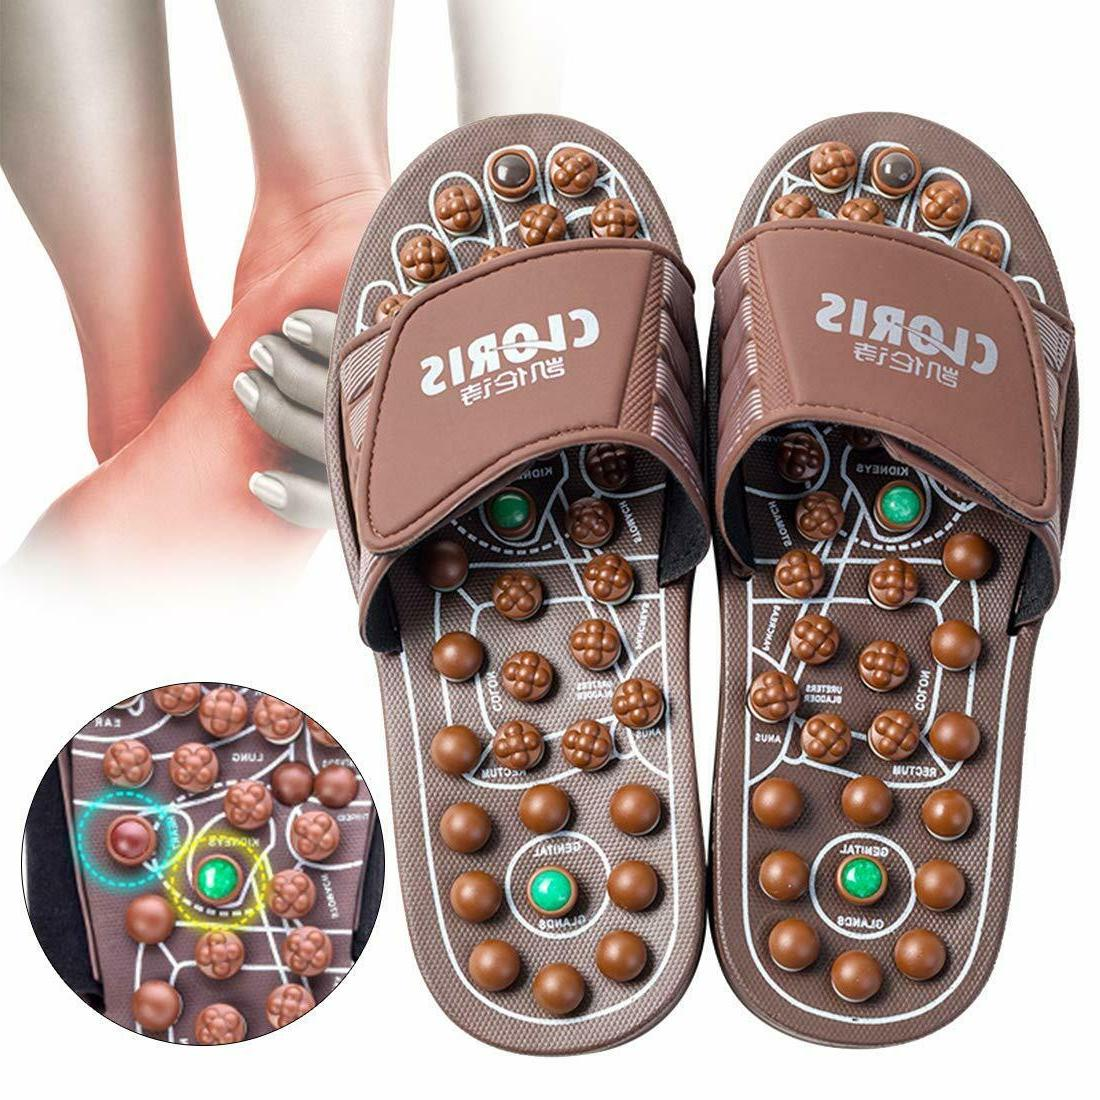 foot acupressure massage slippers powerful natural stone